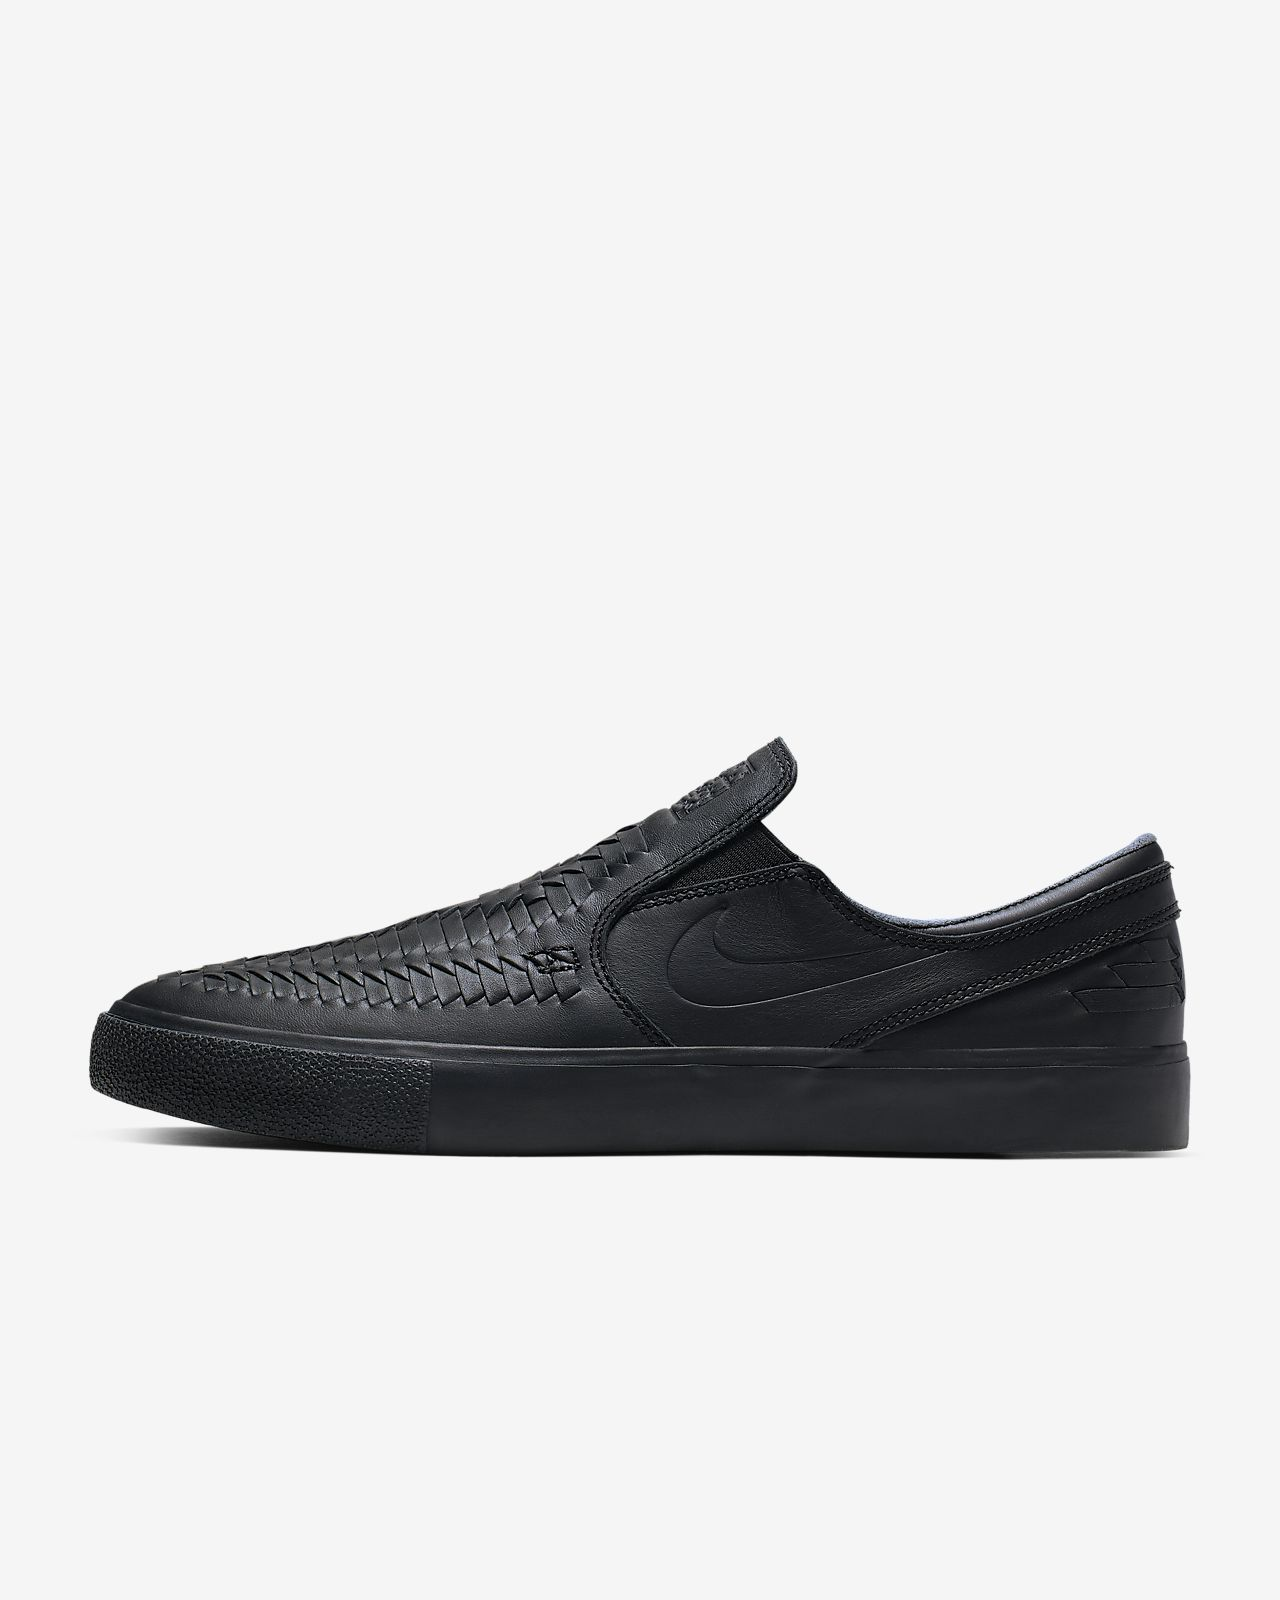 free shipping size 7 super specials Nike SB Zoom Stefan Janoski Slip RM Crafted Skate Shoe